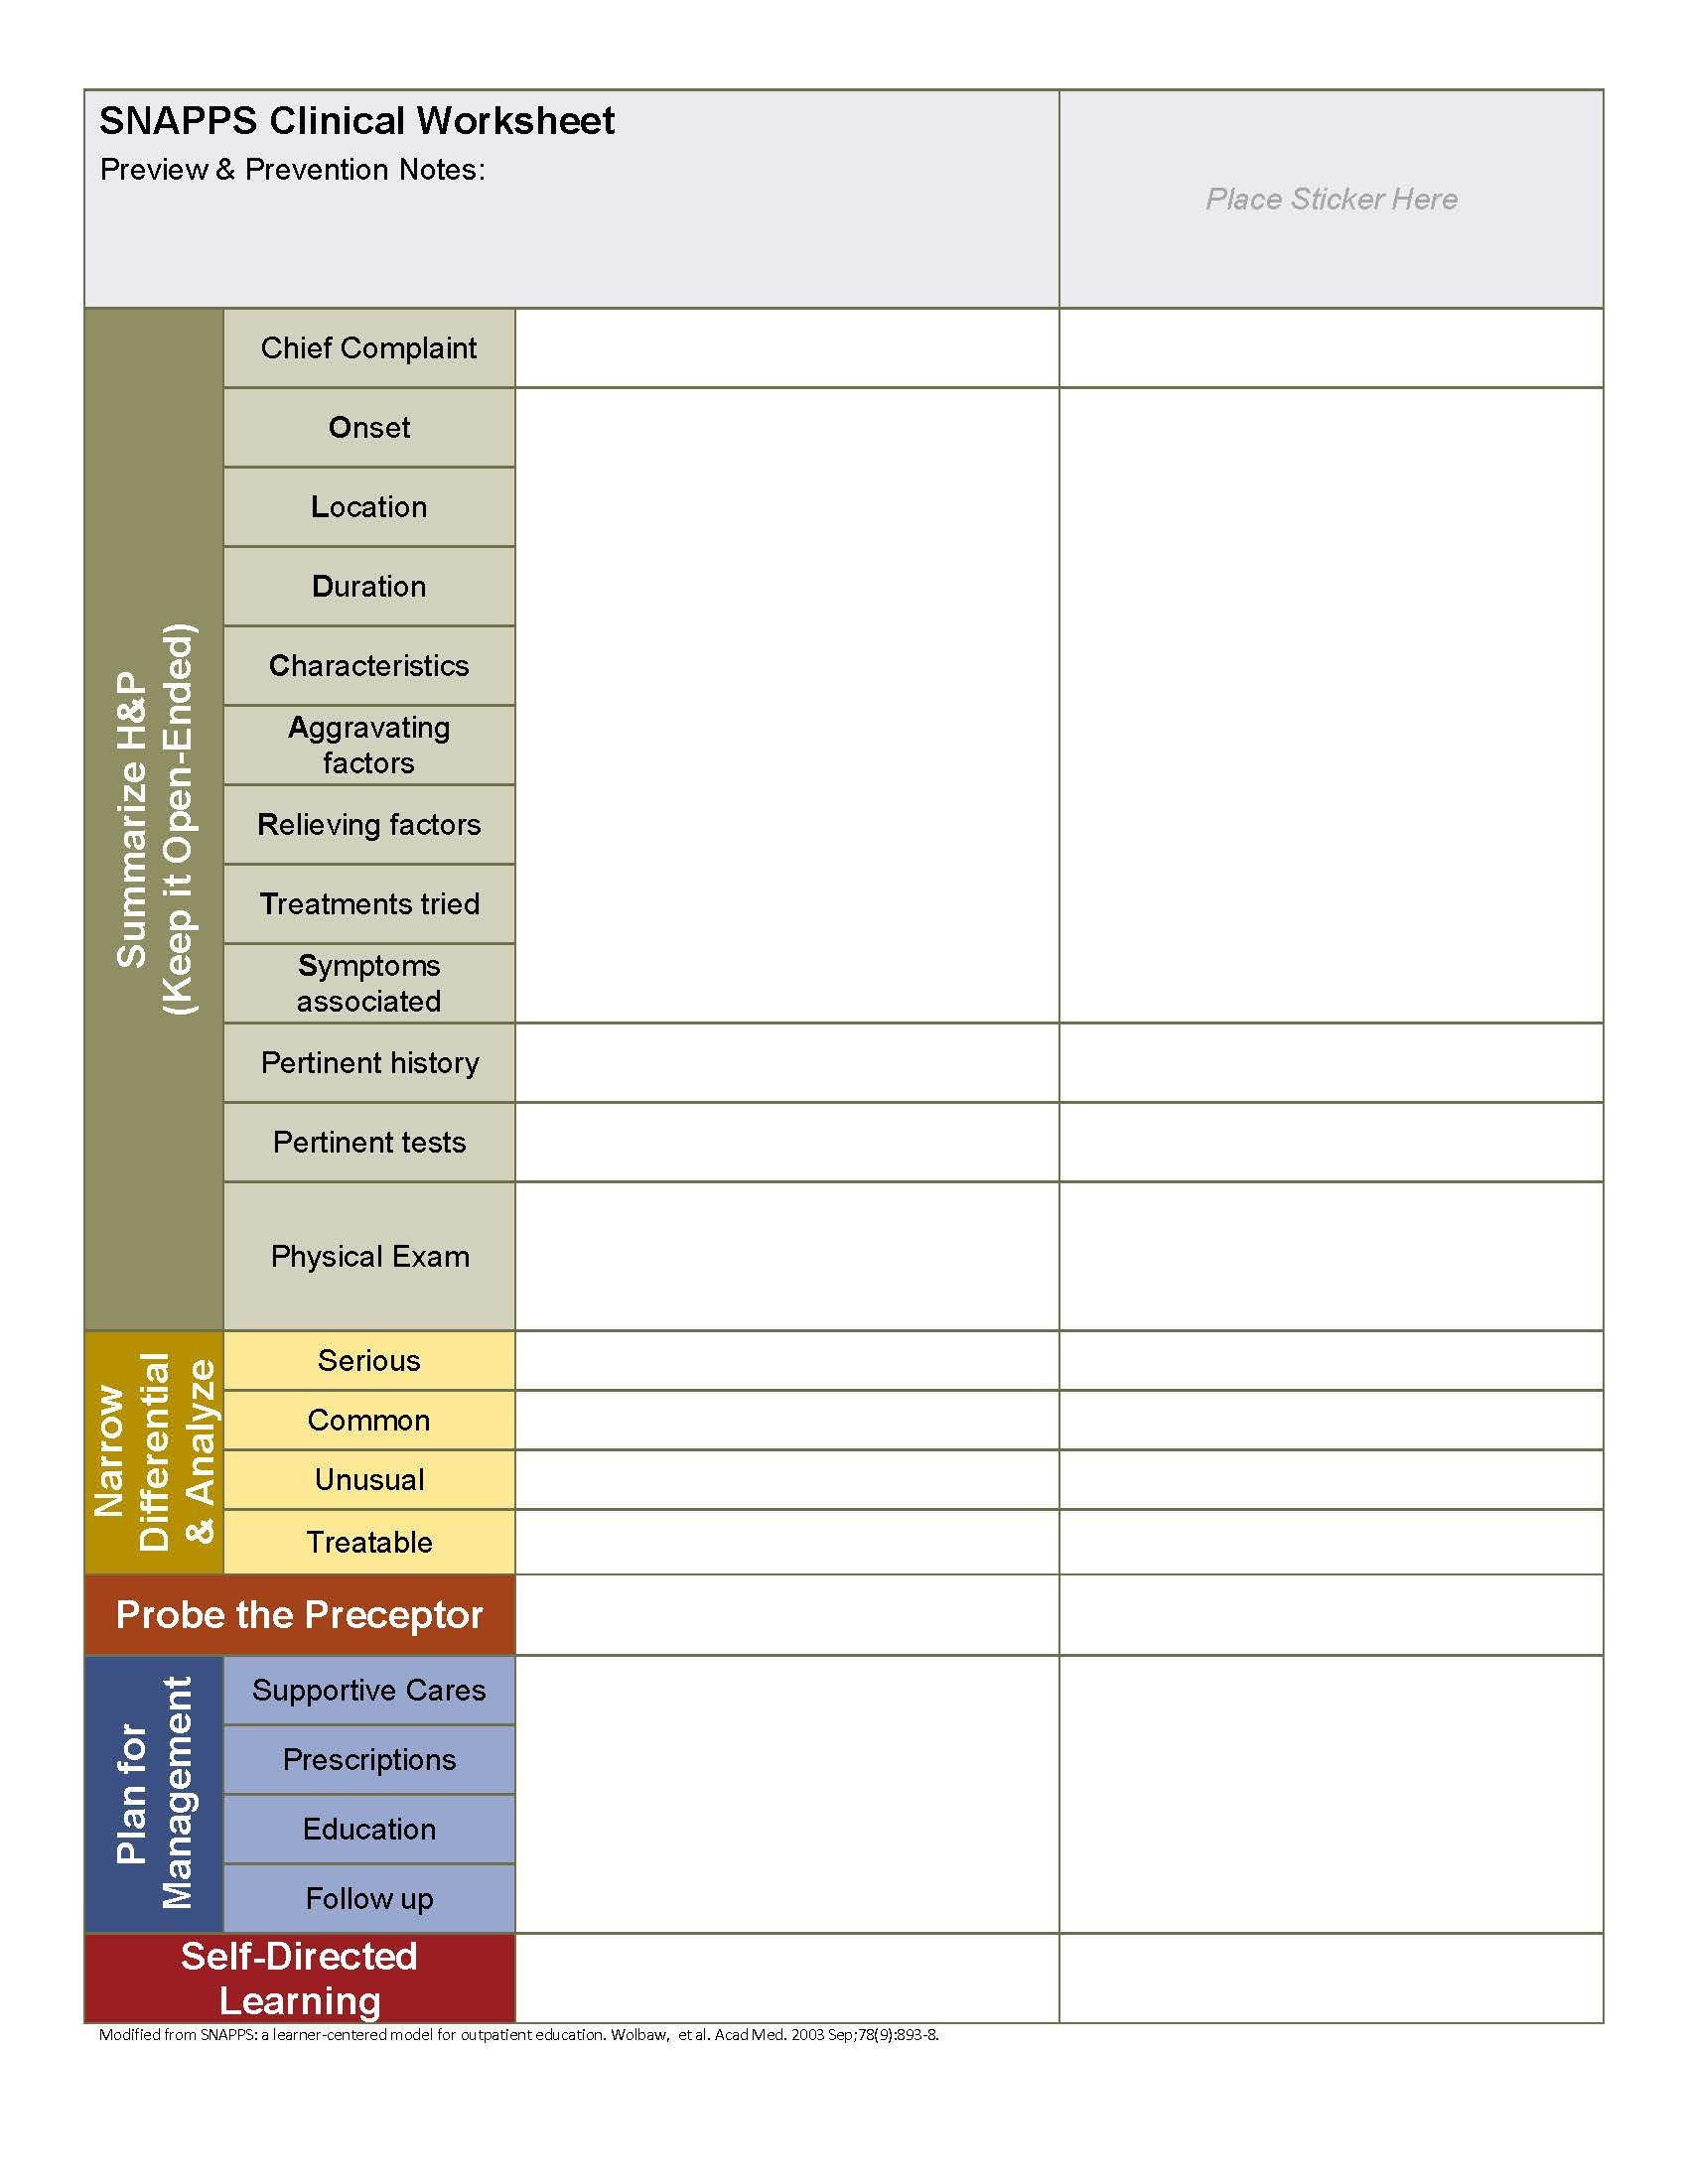 Snapps Worksheet For Medical Learners